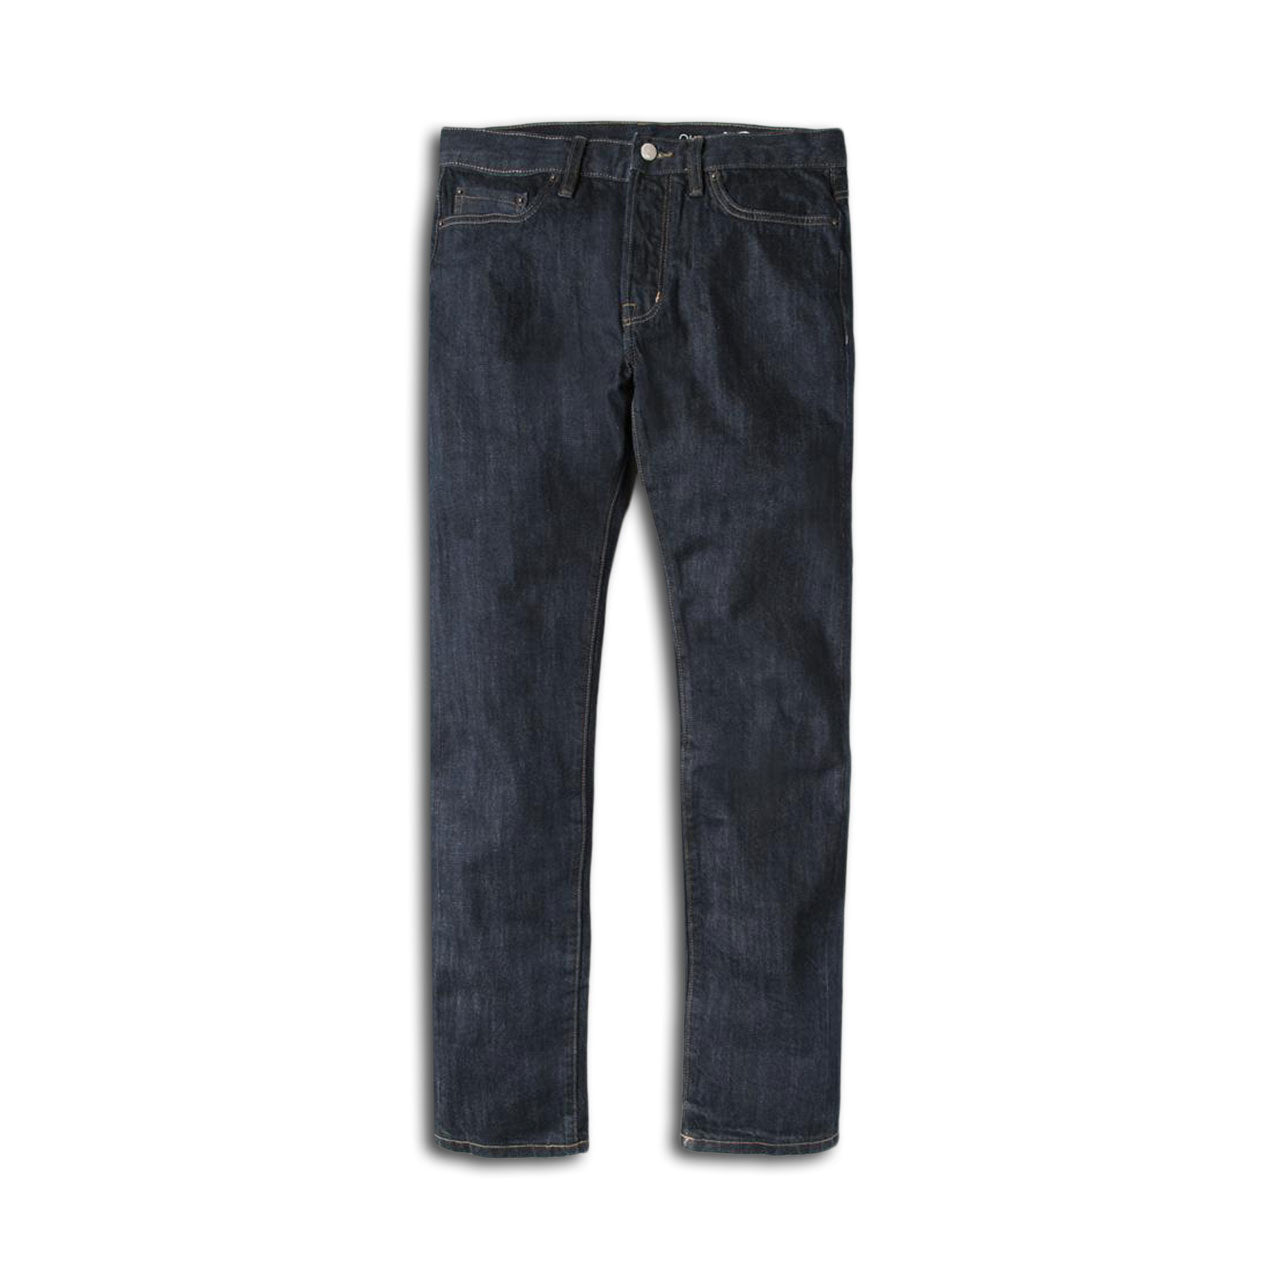 Outerknown Ambassador Jeans